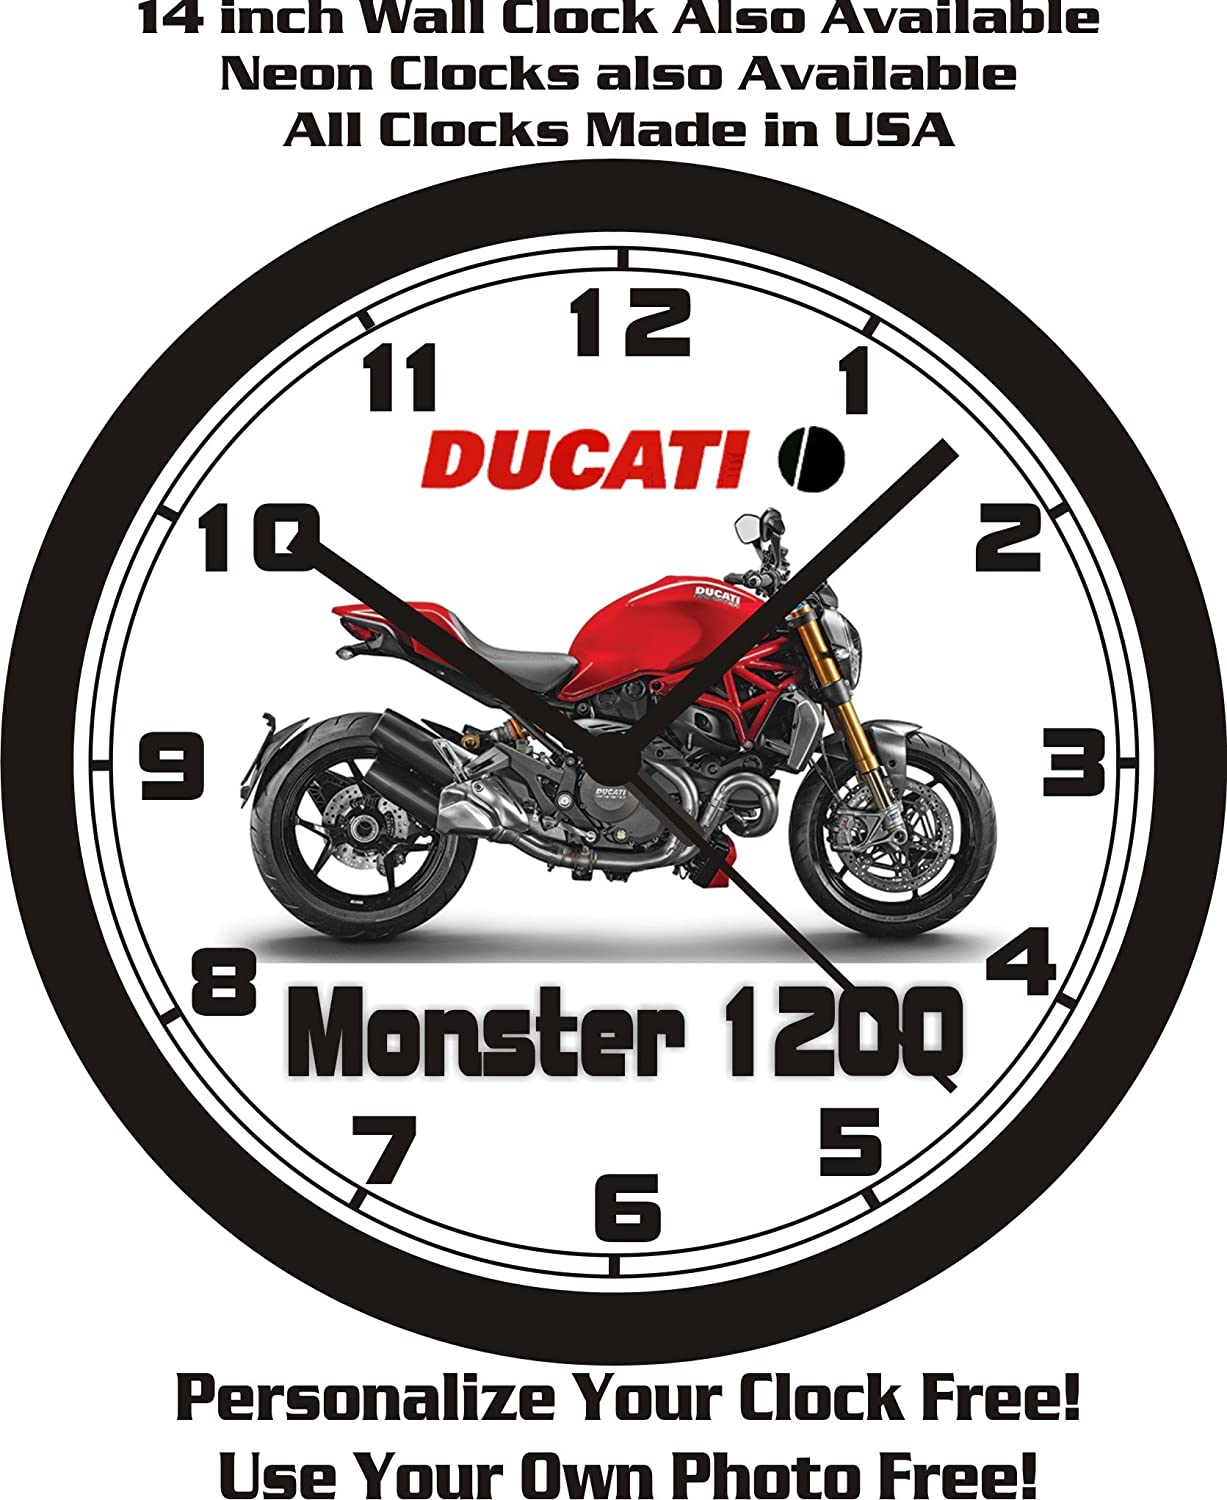 Amazon.com: 2014 DUCATI MONSTER 1200 MOTORCYCLE WALL CLOCK ...